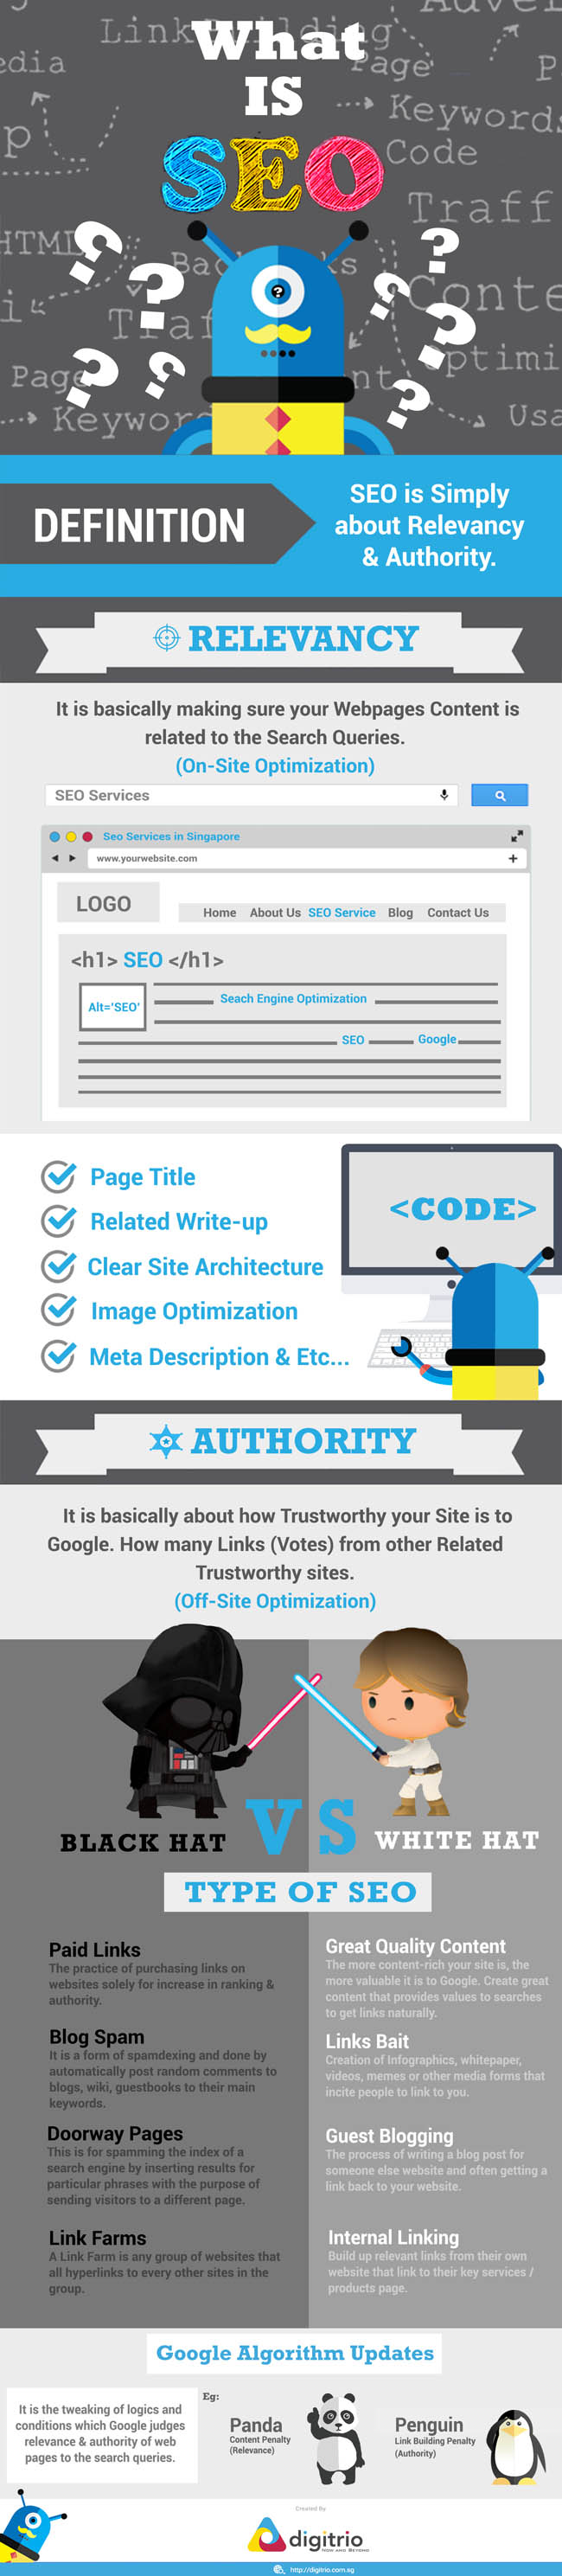 simple-explanation-to-what-is-seo